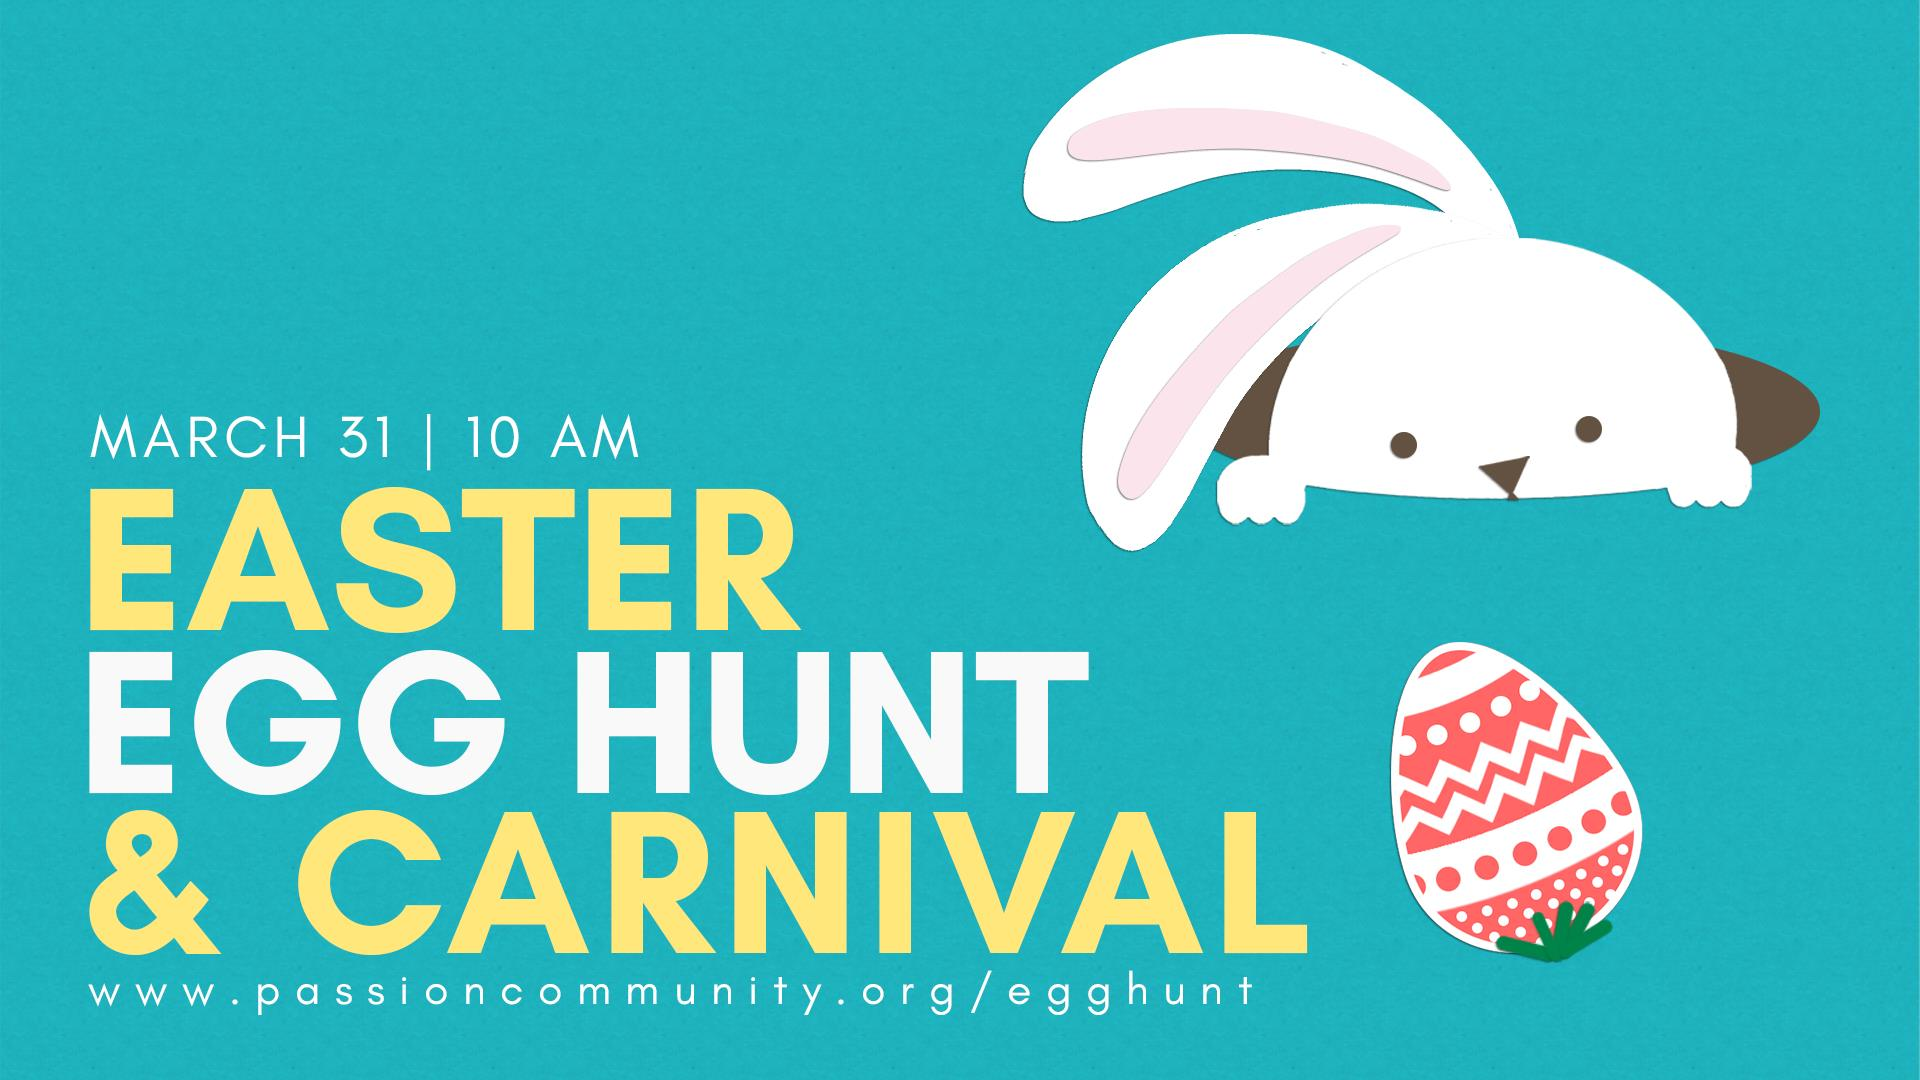 Easter Egg Hunt & Carnival @ Passion Community  March 31st at 10am-12pm  512 Breezewood Dr. Lynchburg, VA 24502  Easter Egg Hunt and Carnival is open to the community to bring their families to have all kinds of fun! We will have the following activities and more available:Carnival games, prizes, crafts, bounce houses, laser tag, photos with Easter bunny, age specific Easter egg hunts.  *Kids should bring their own baskets for the Easter Egg Hunt.